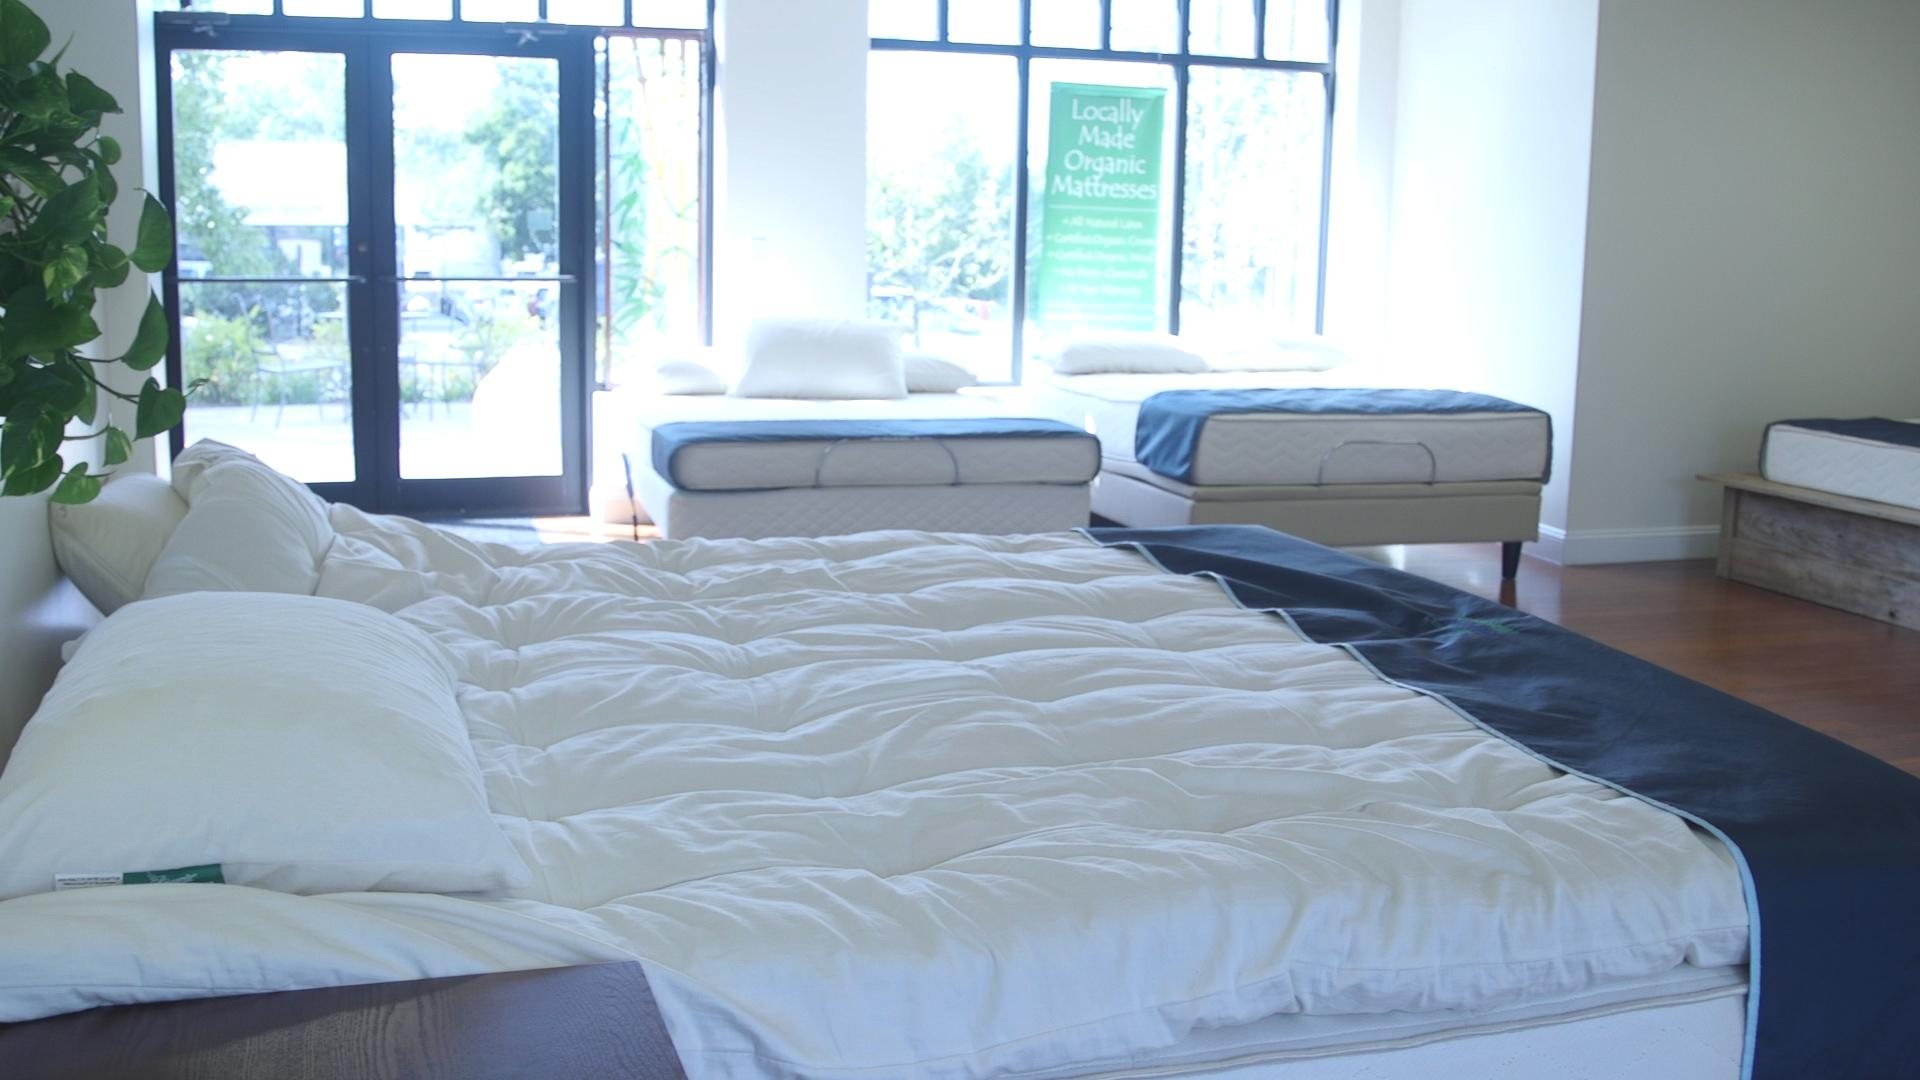 the best attitude f8146 33b14 Best Mattress Buying Guide - Consumer Reports